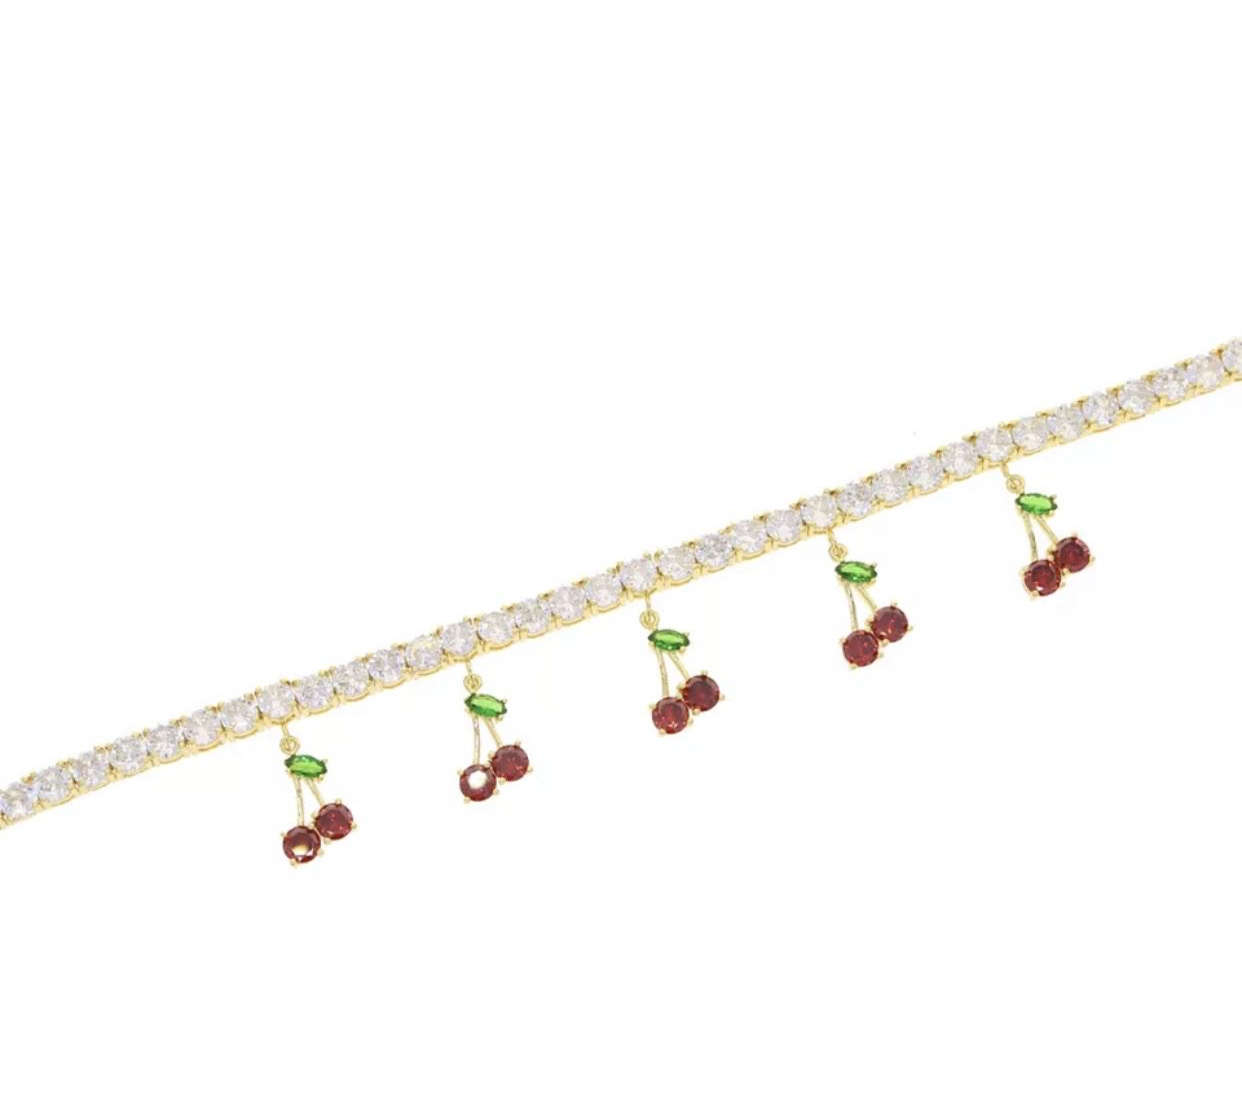 ADJUSTABLE CHERRY ANKLET - Bling Ting